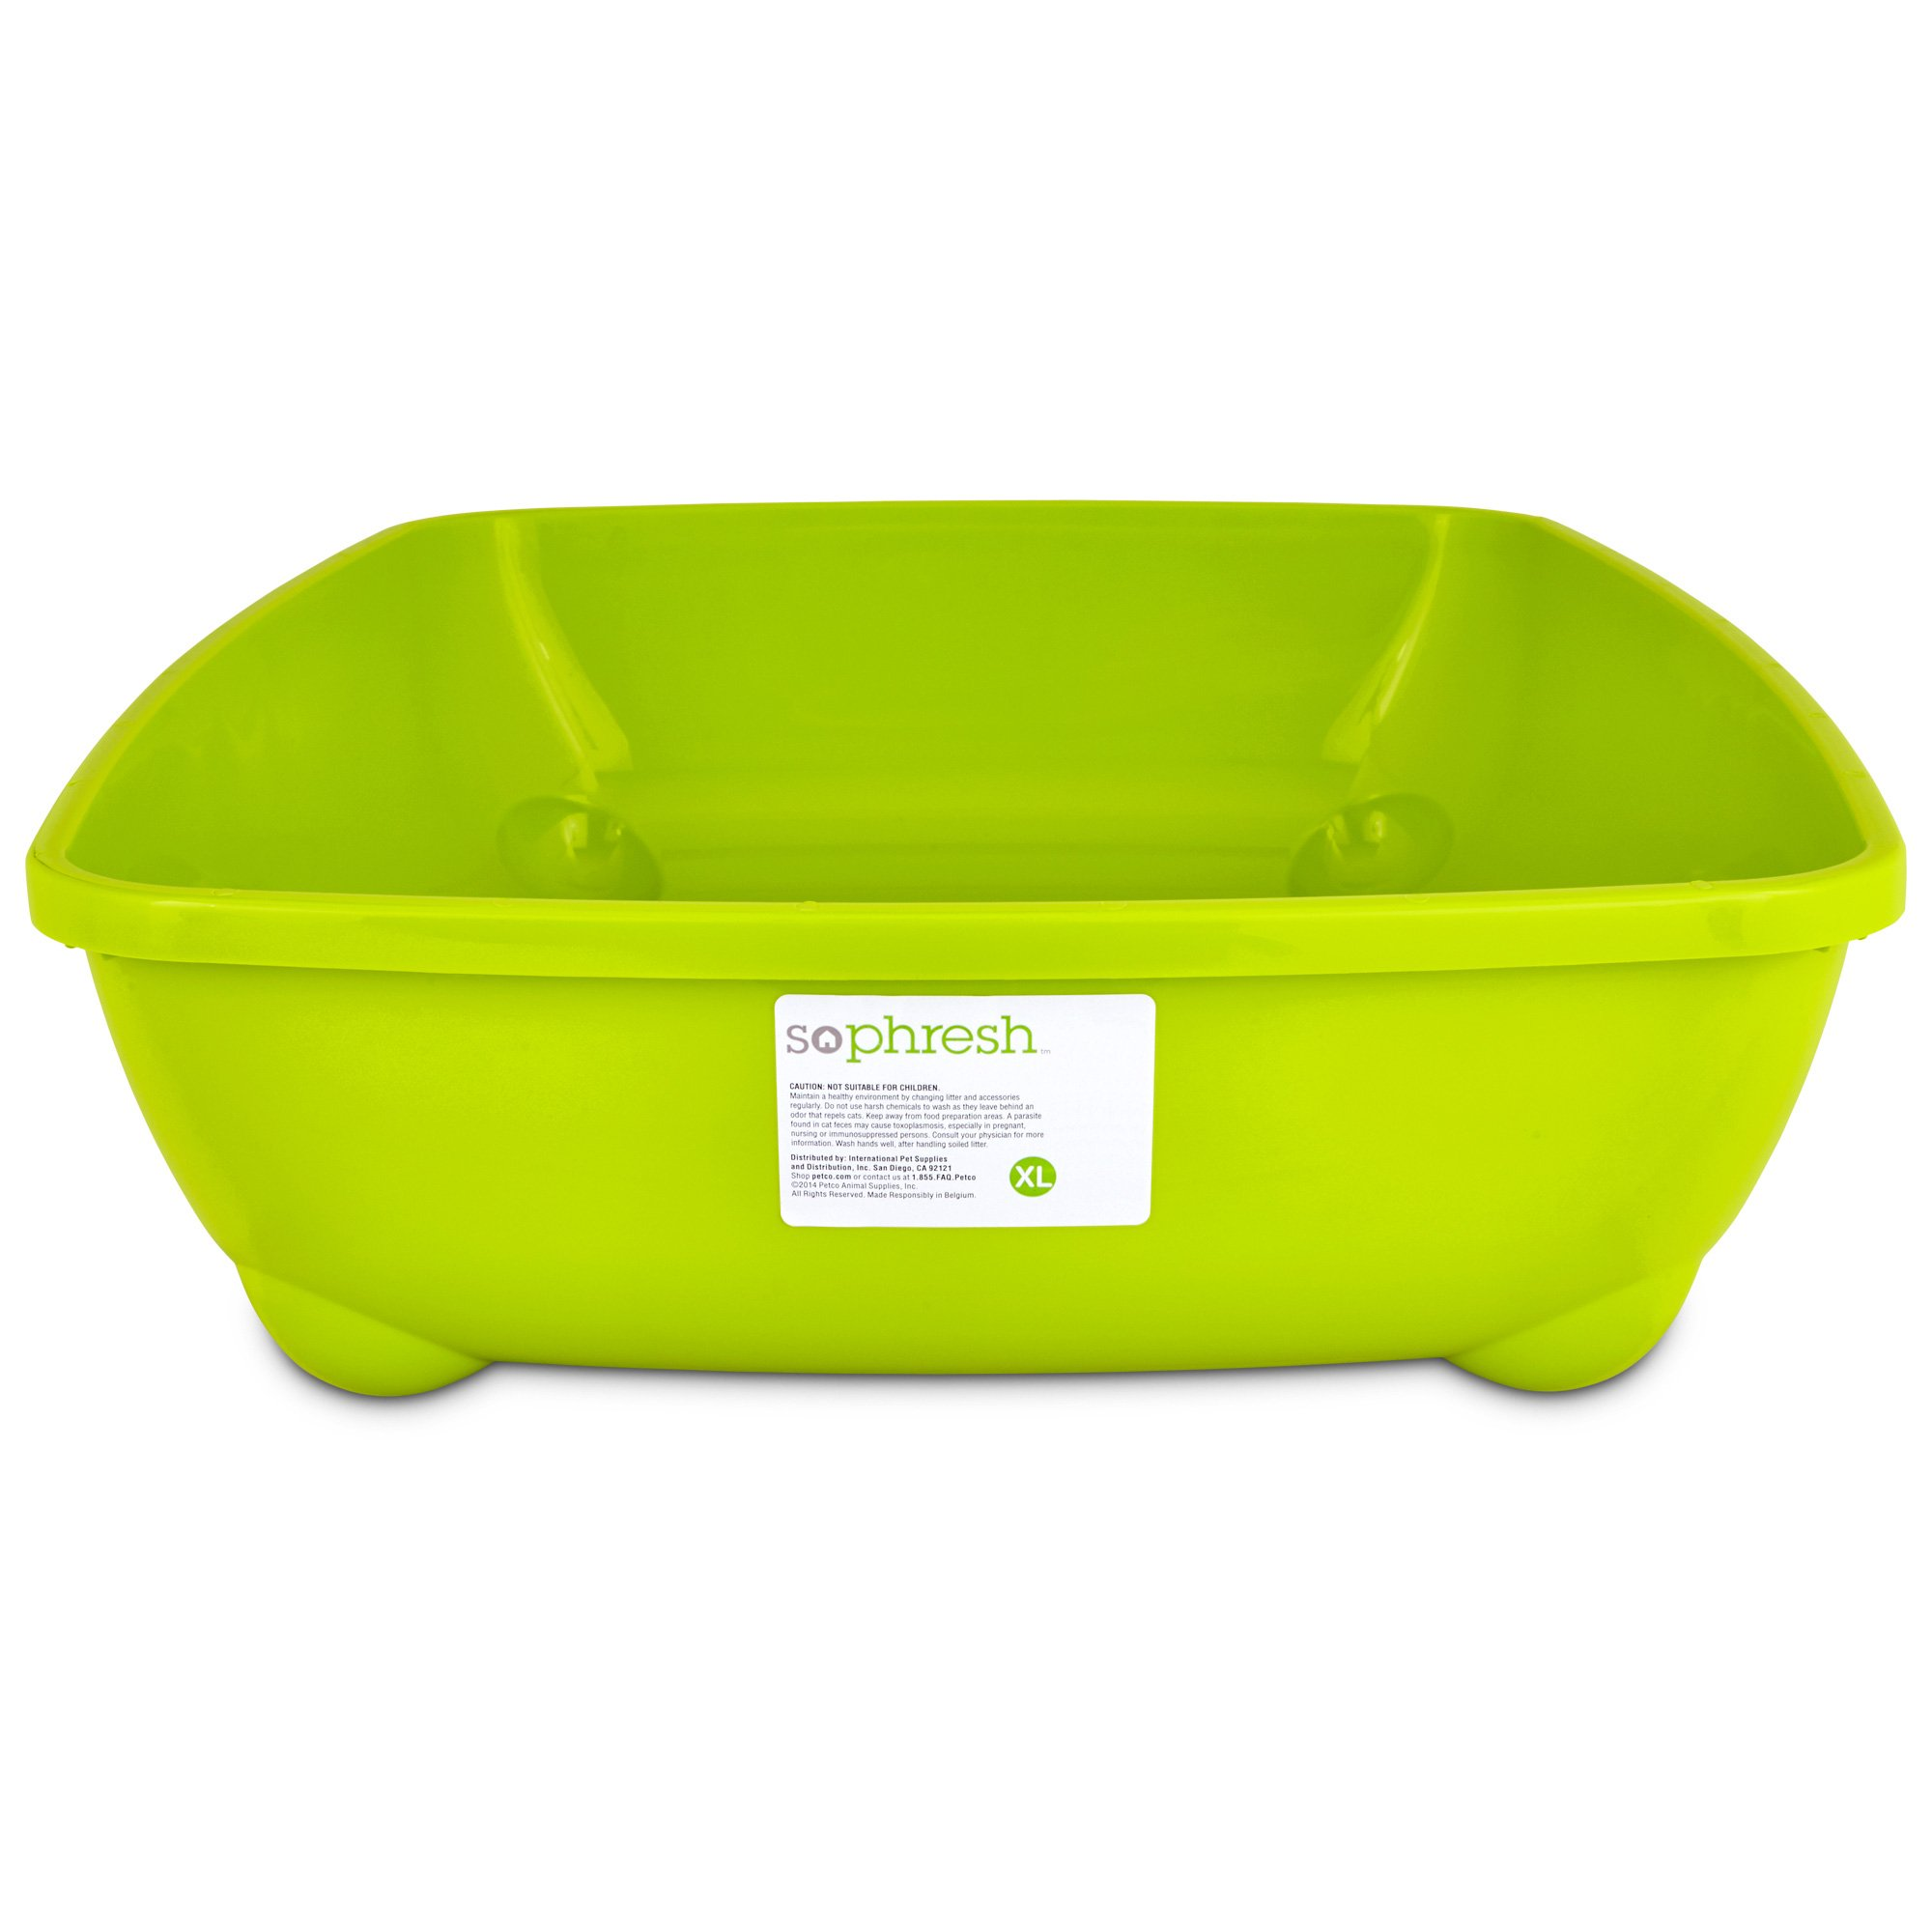 So Phresh Lime Green X-Large Open Litter Box